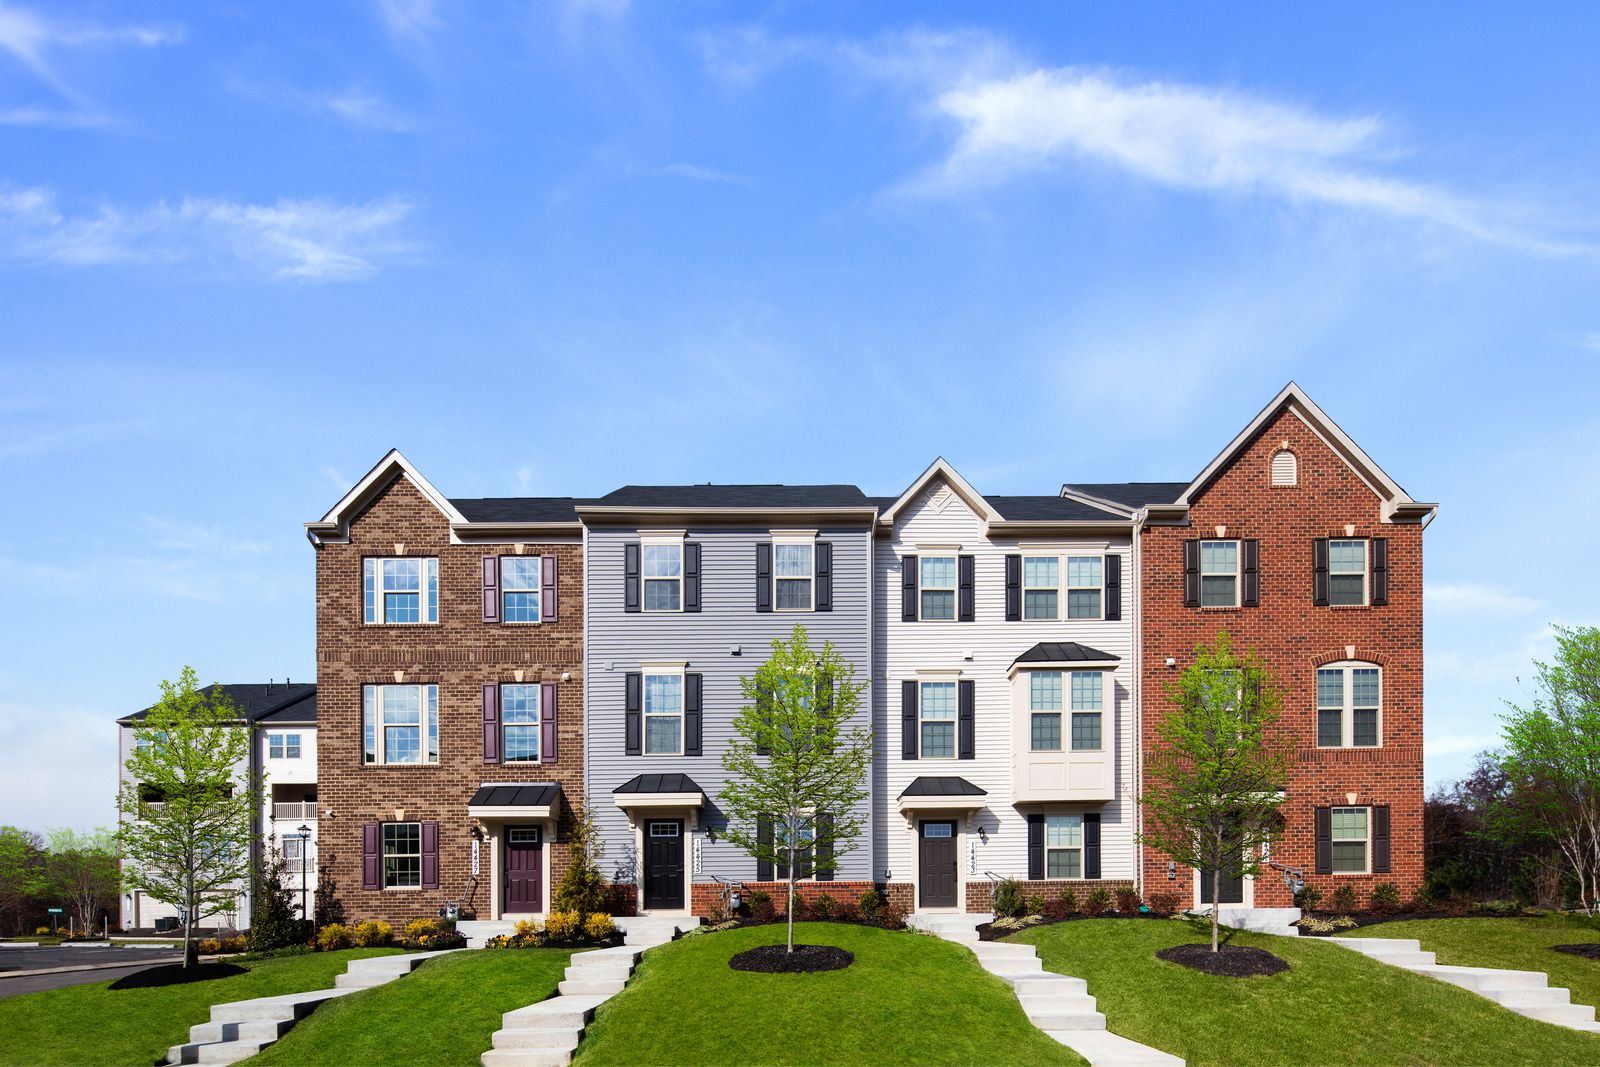 WELCOME TO TIMOTHY BRANCH IN BRANDYWINE, MD:Luxury townhomes in Brandywine's only planned community with amenities, affordable homes, and the location you need!Schedule an appointment today!